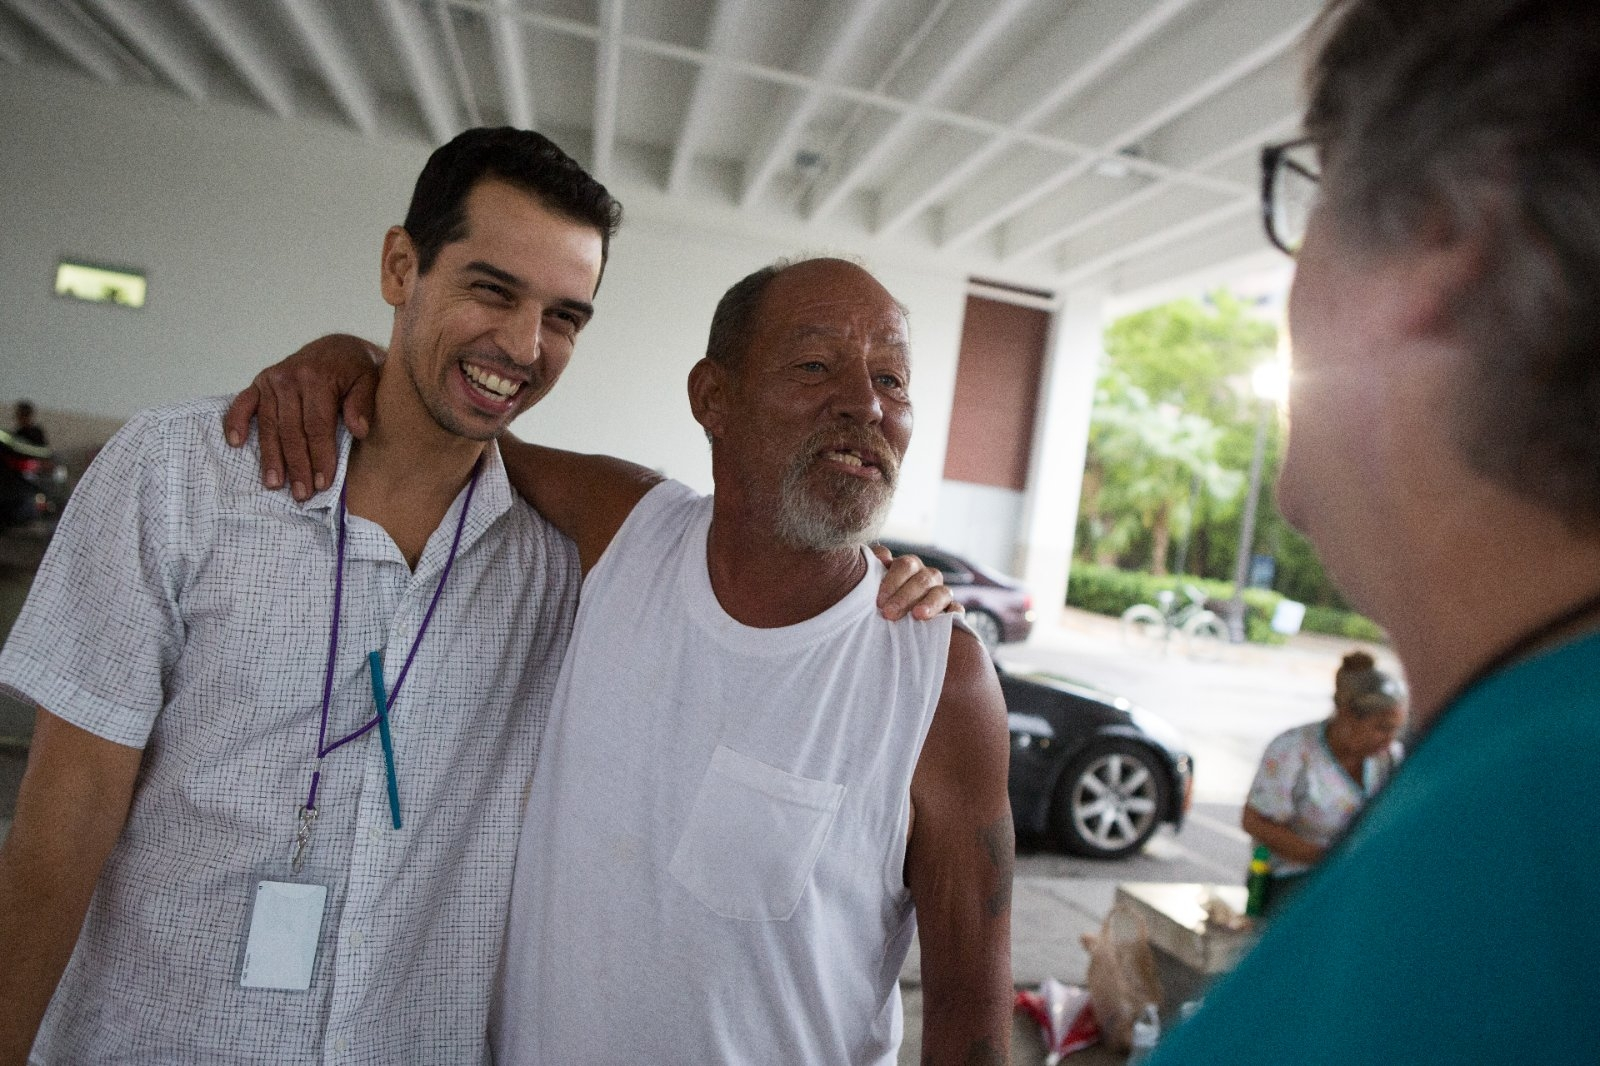 A coordinator for a program supporting the homeless stands with a resident.